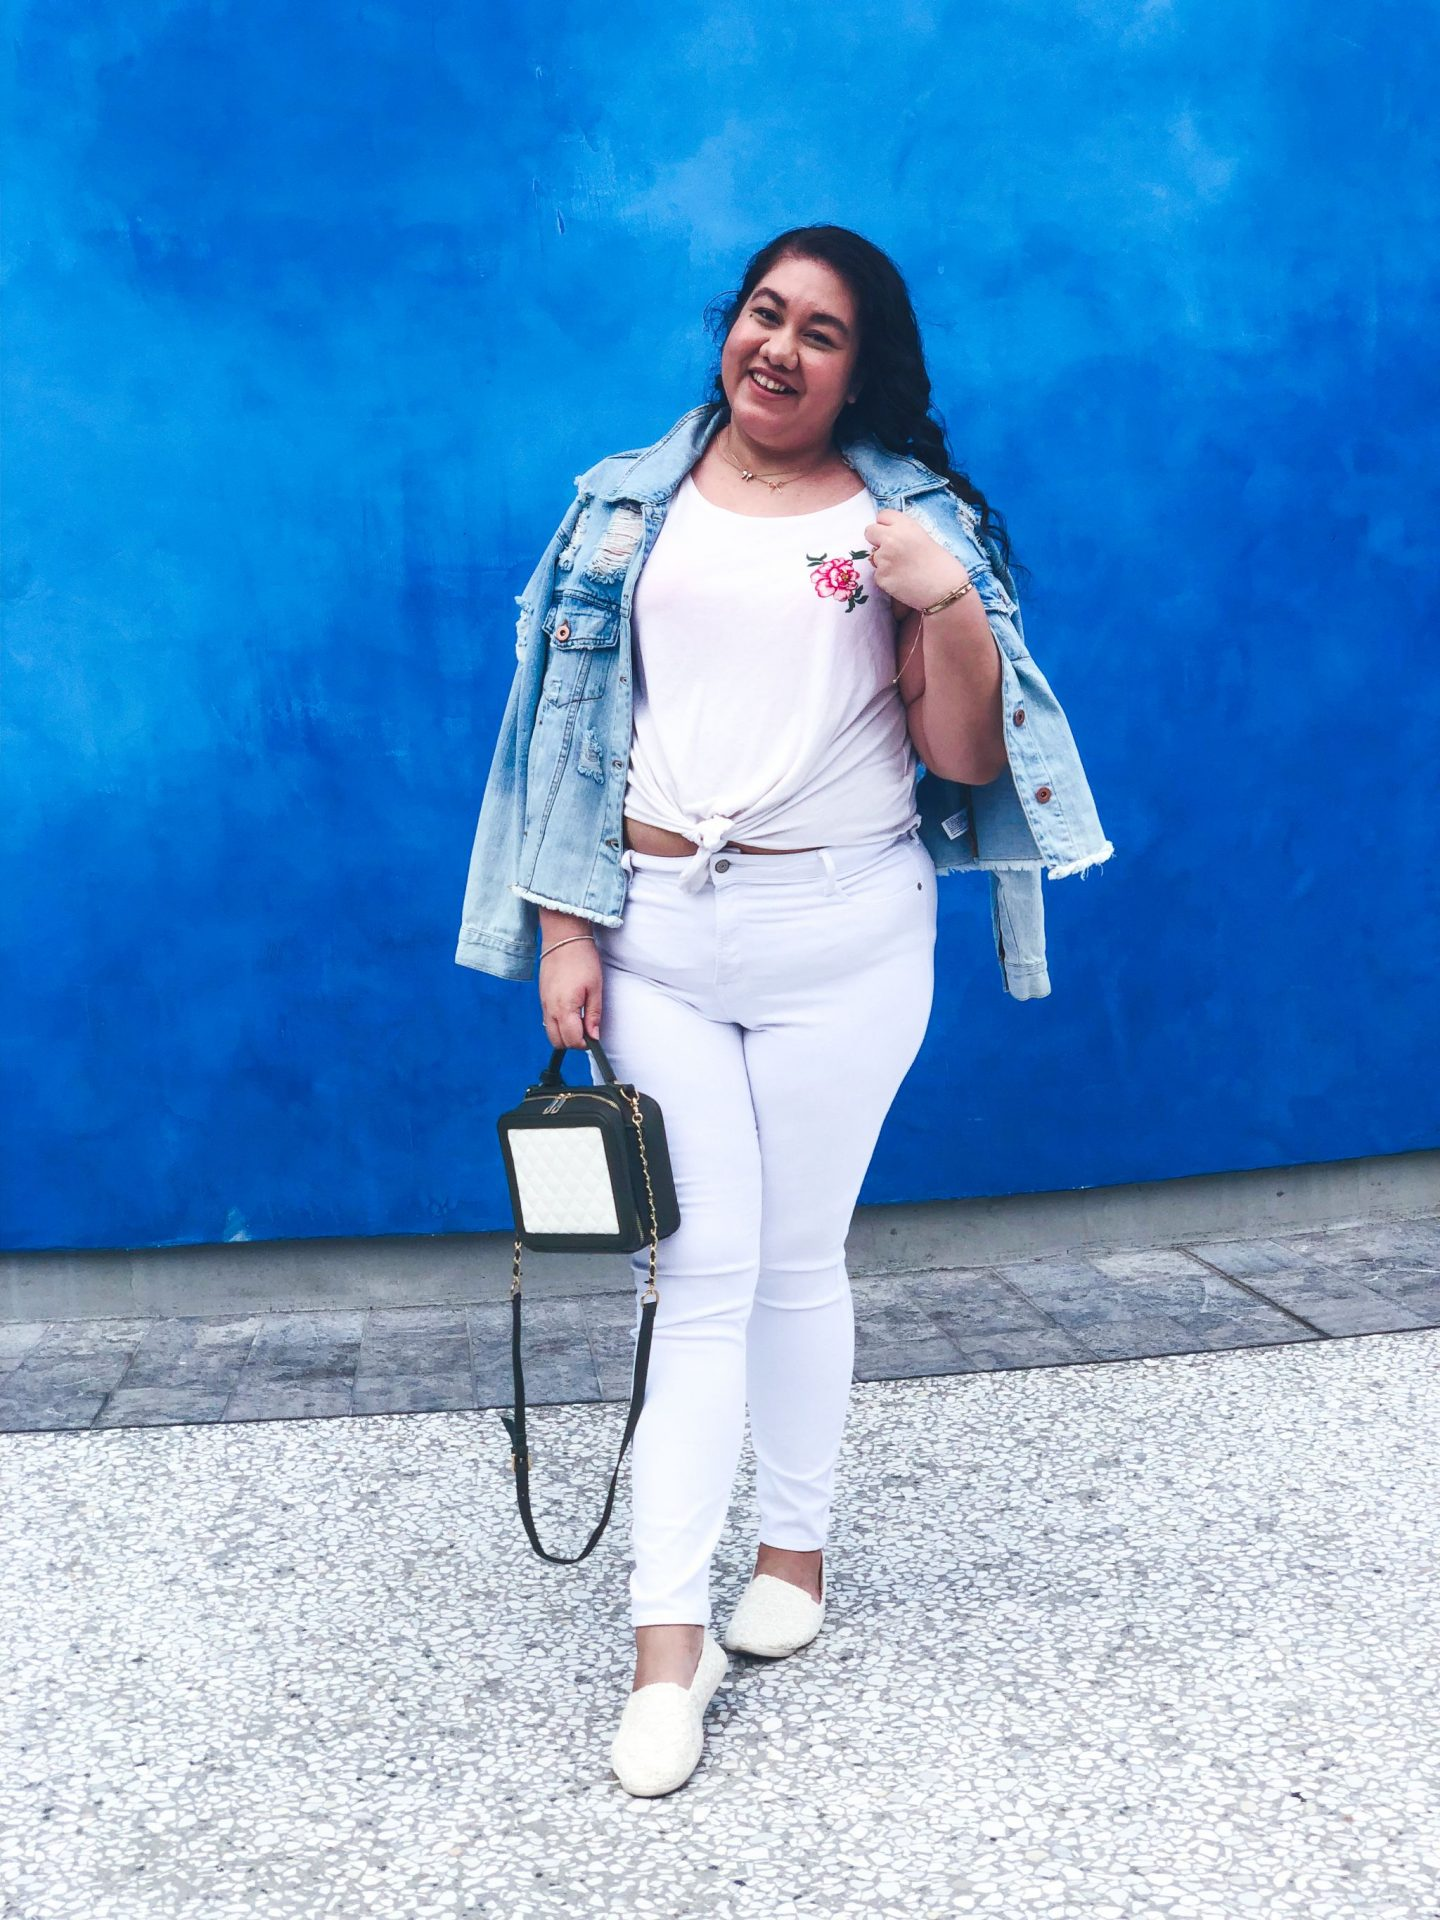 Wearing an all White Spring Outfit